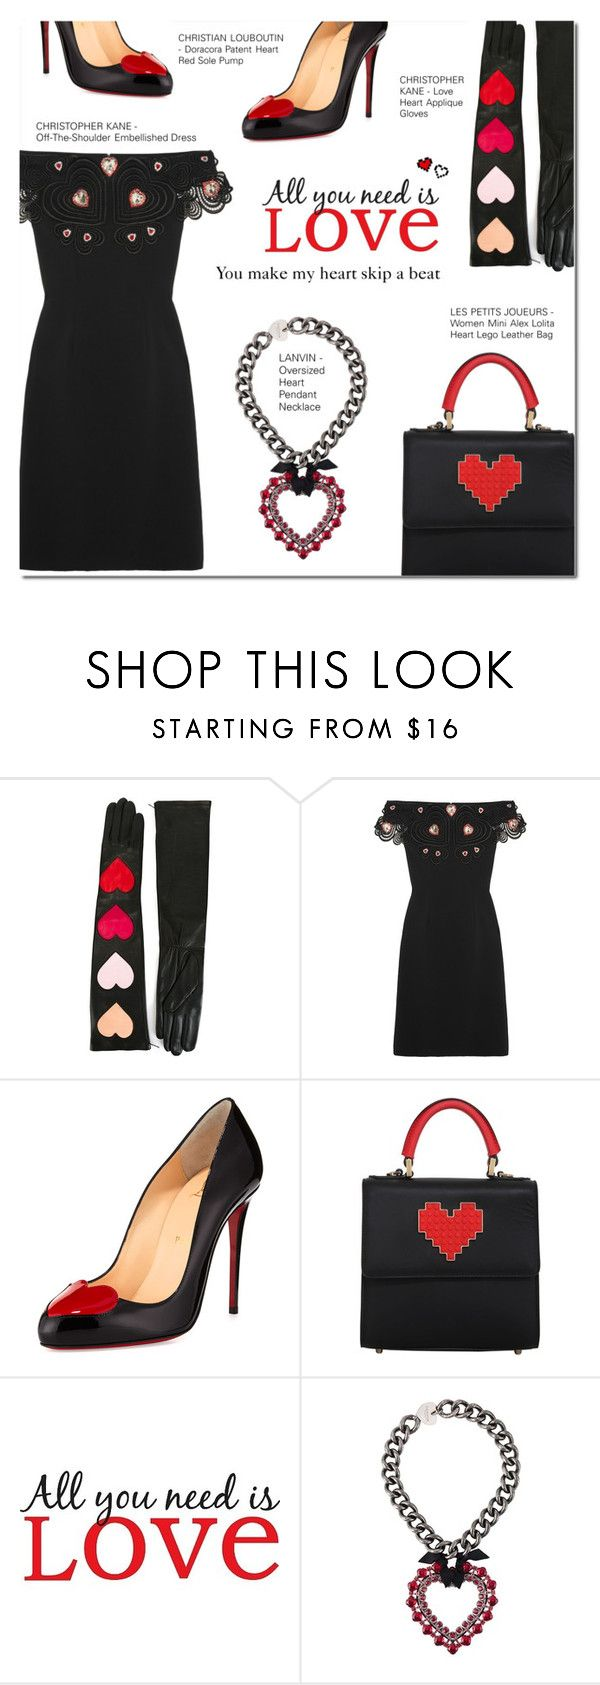 """""""YOU MAKE MY HEART..."""" by larissa-takahassi ❤ liked on Polyvore featuring Christopher Kane, Christian Louboutin, Les Petits Joueurs, Brewster Home Fashions, Lanvin and Retrò"""